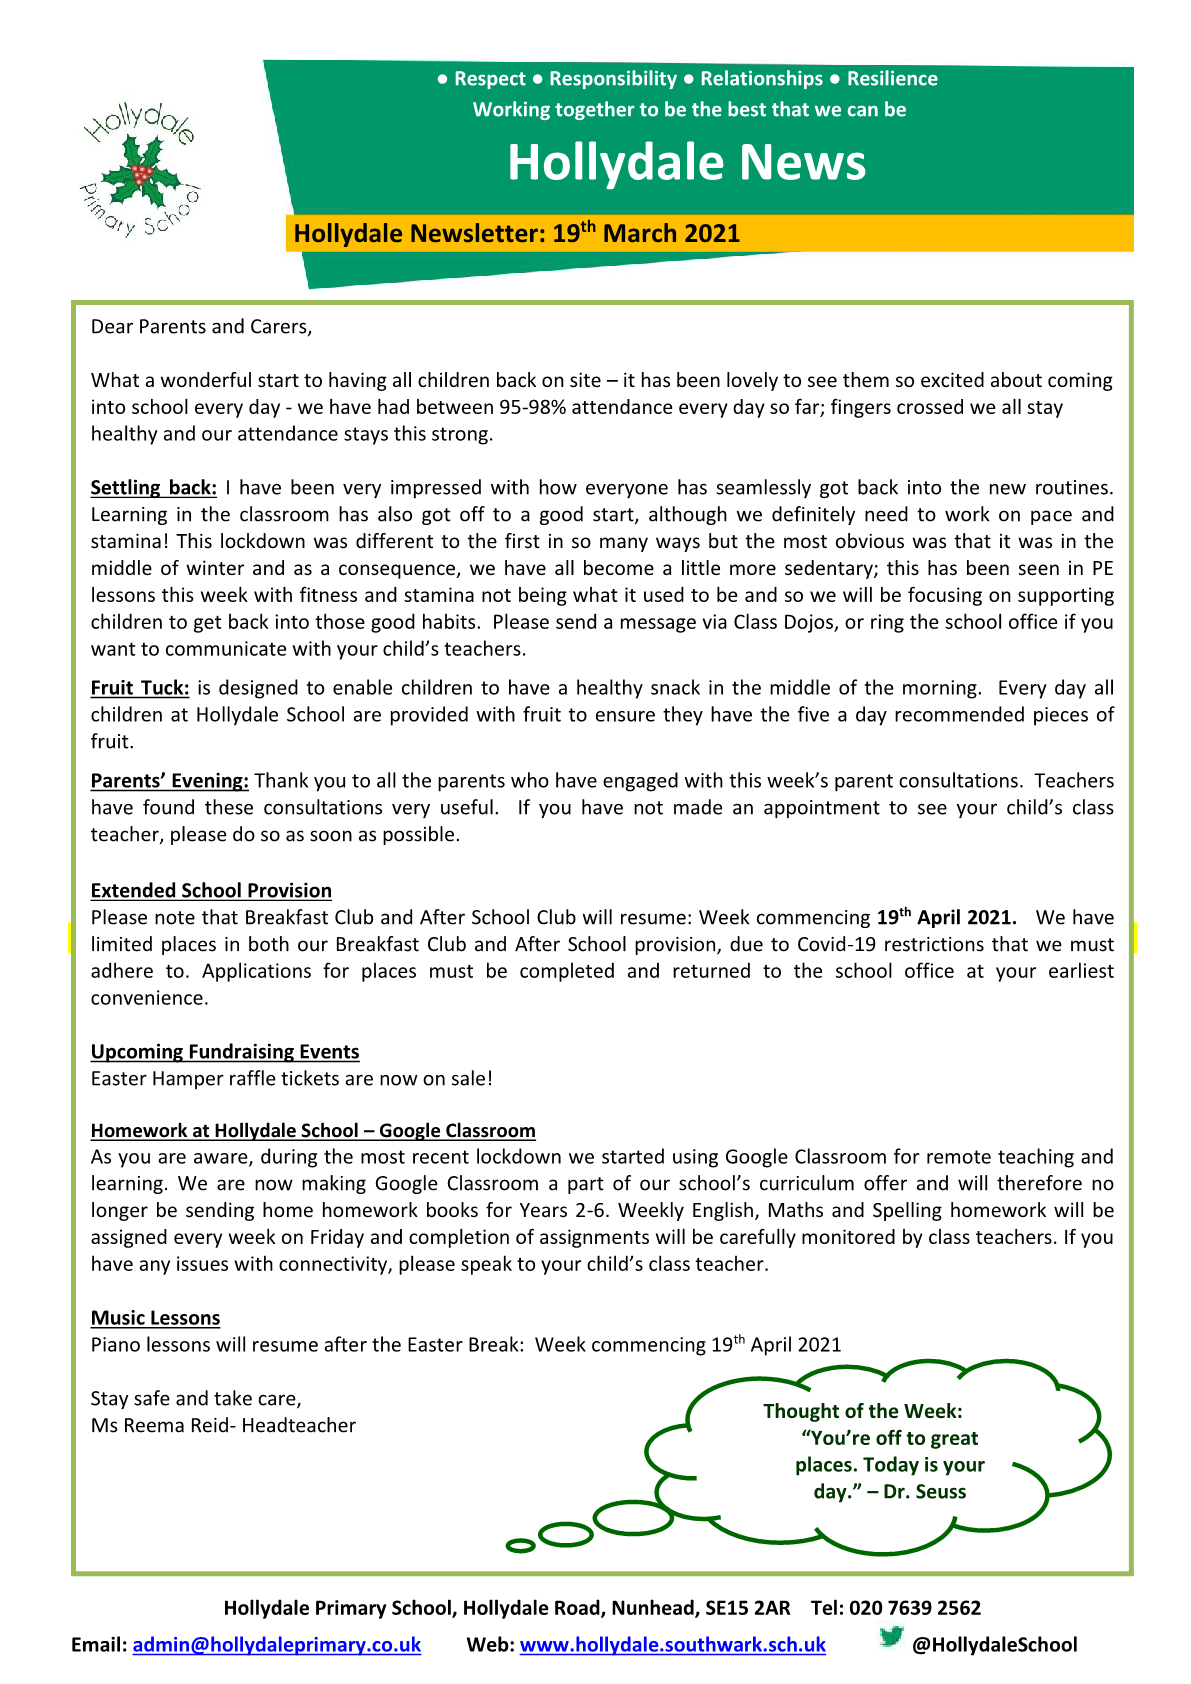 Newsletter 19th March 2021